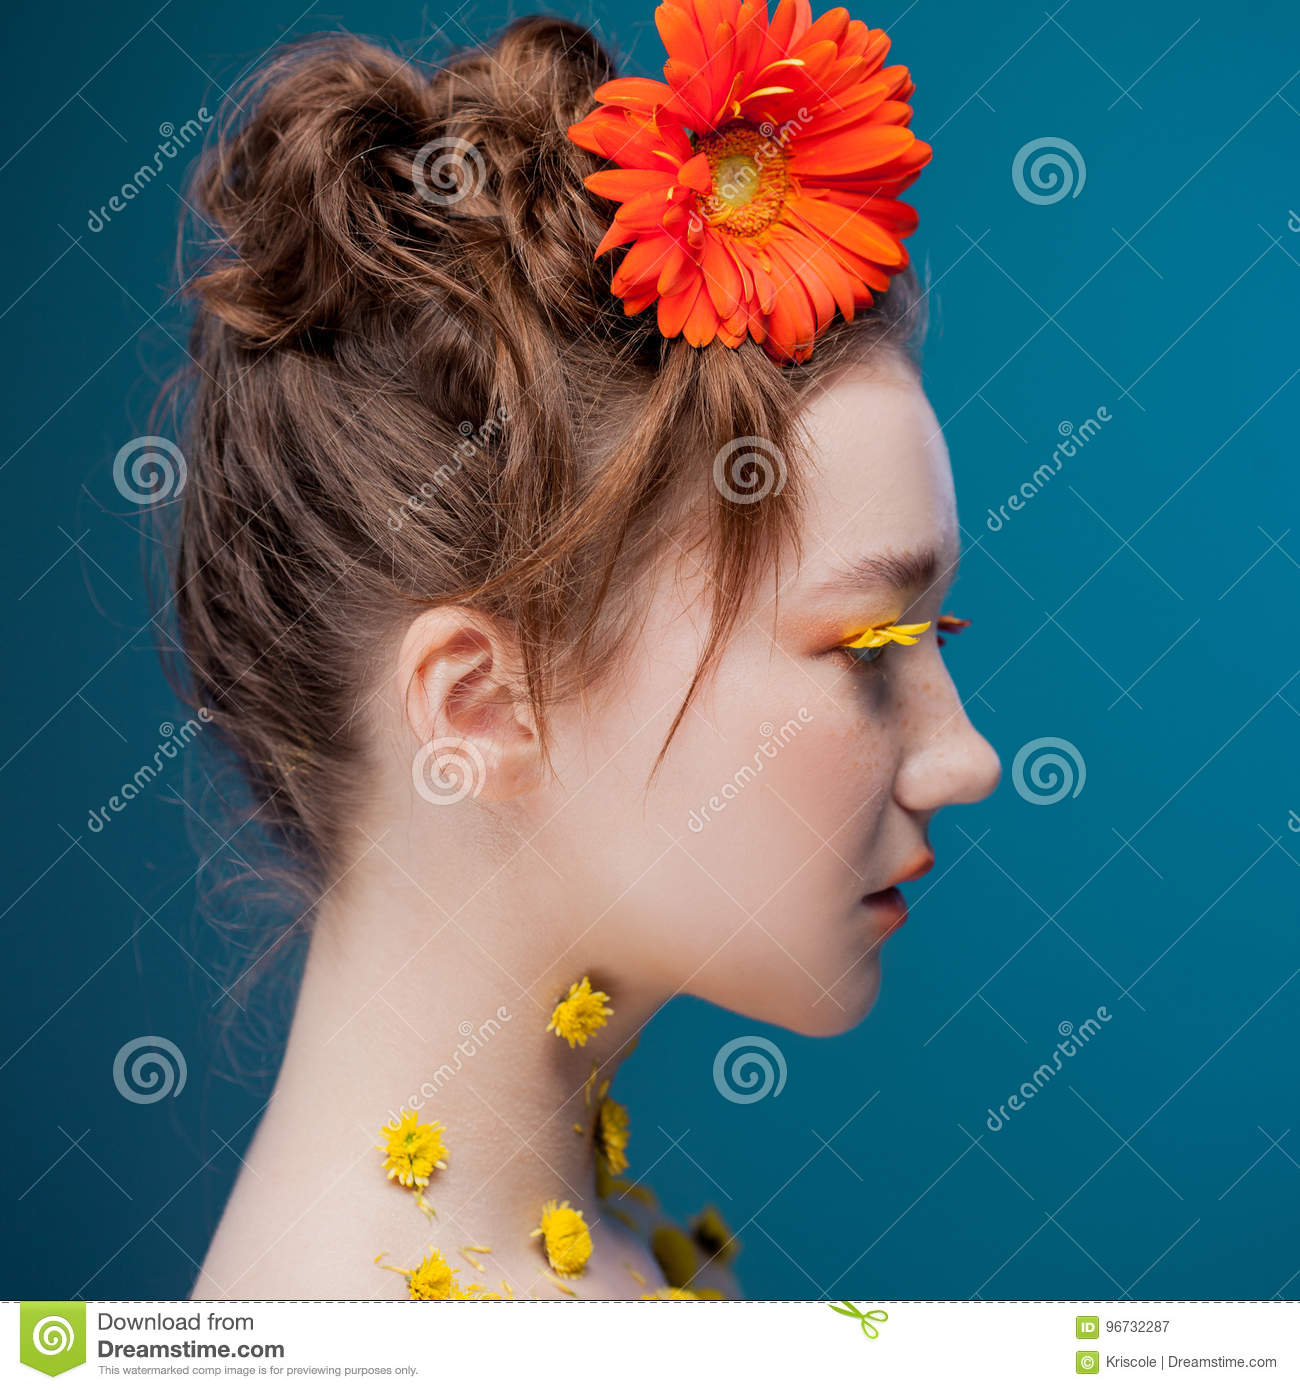 Beautiful young girl in the image of flora, close-up portrait